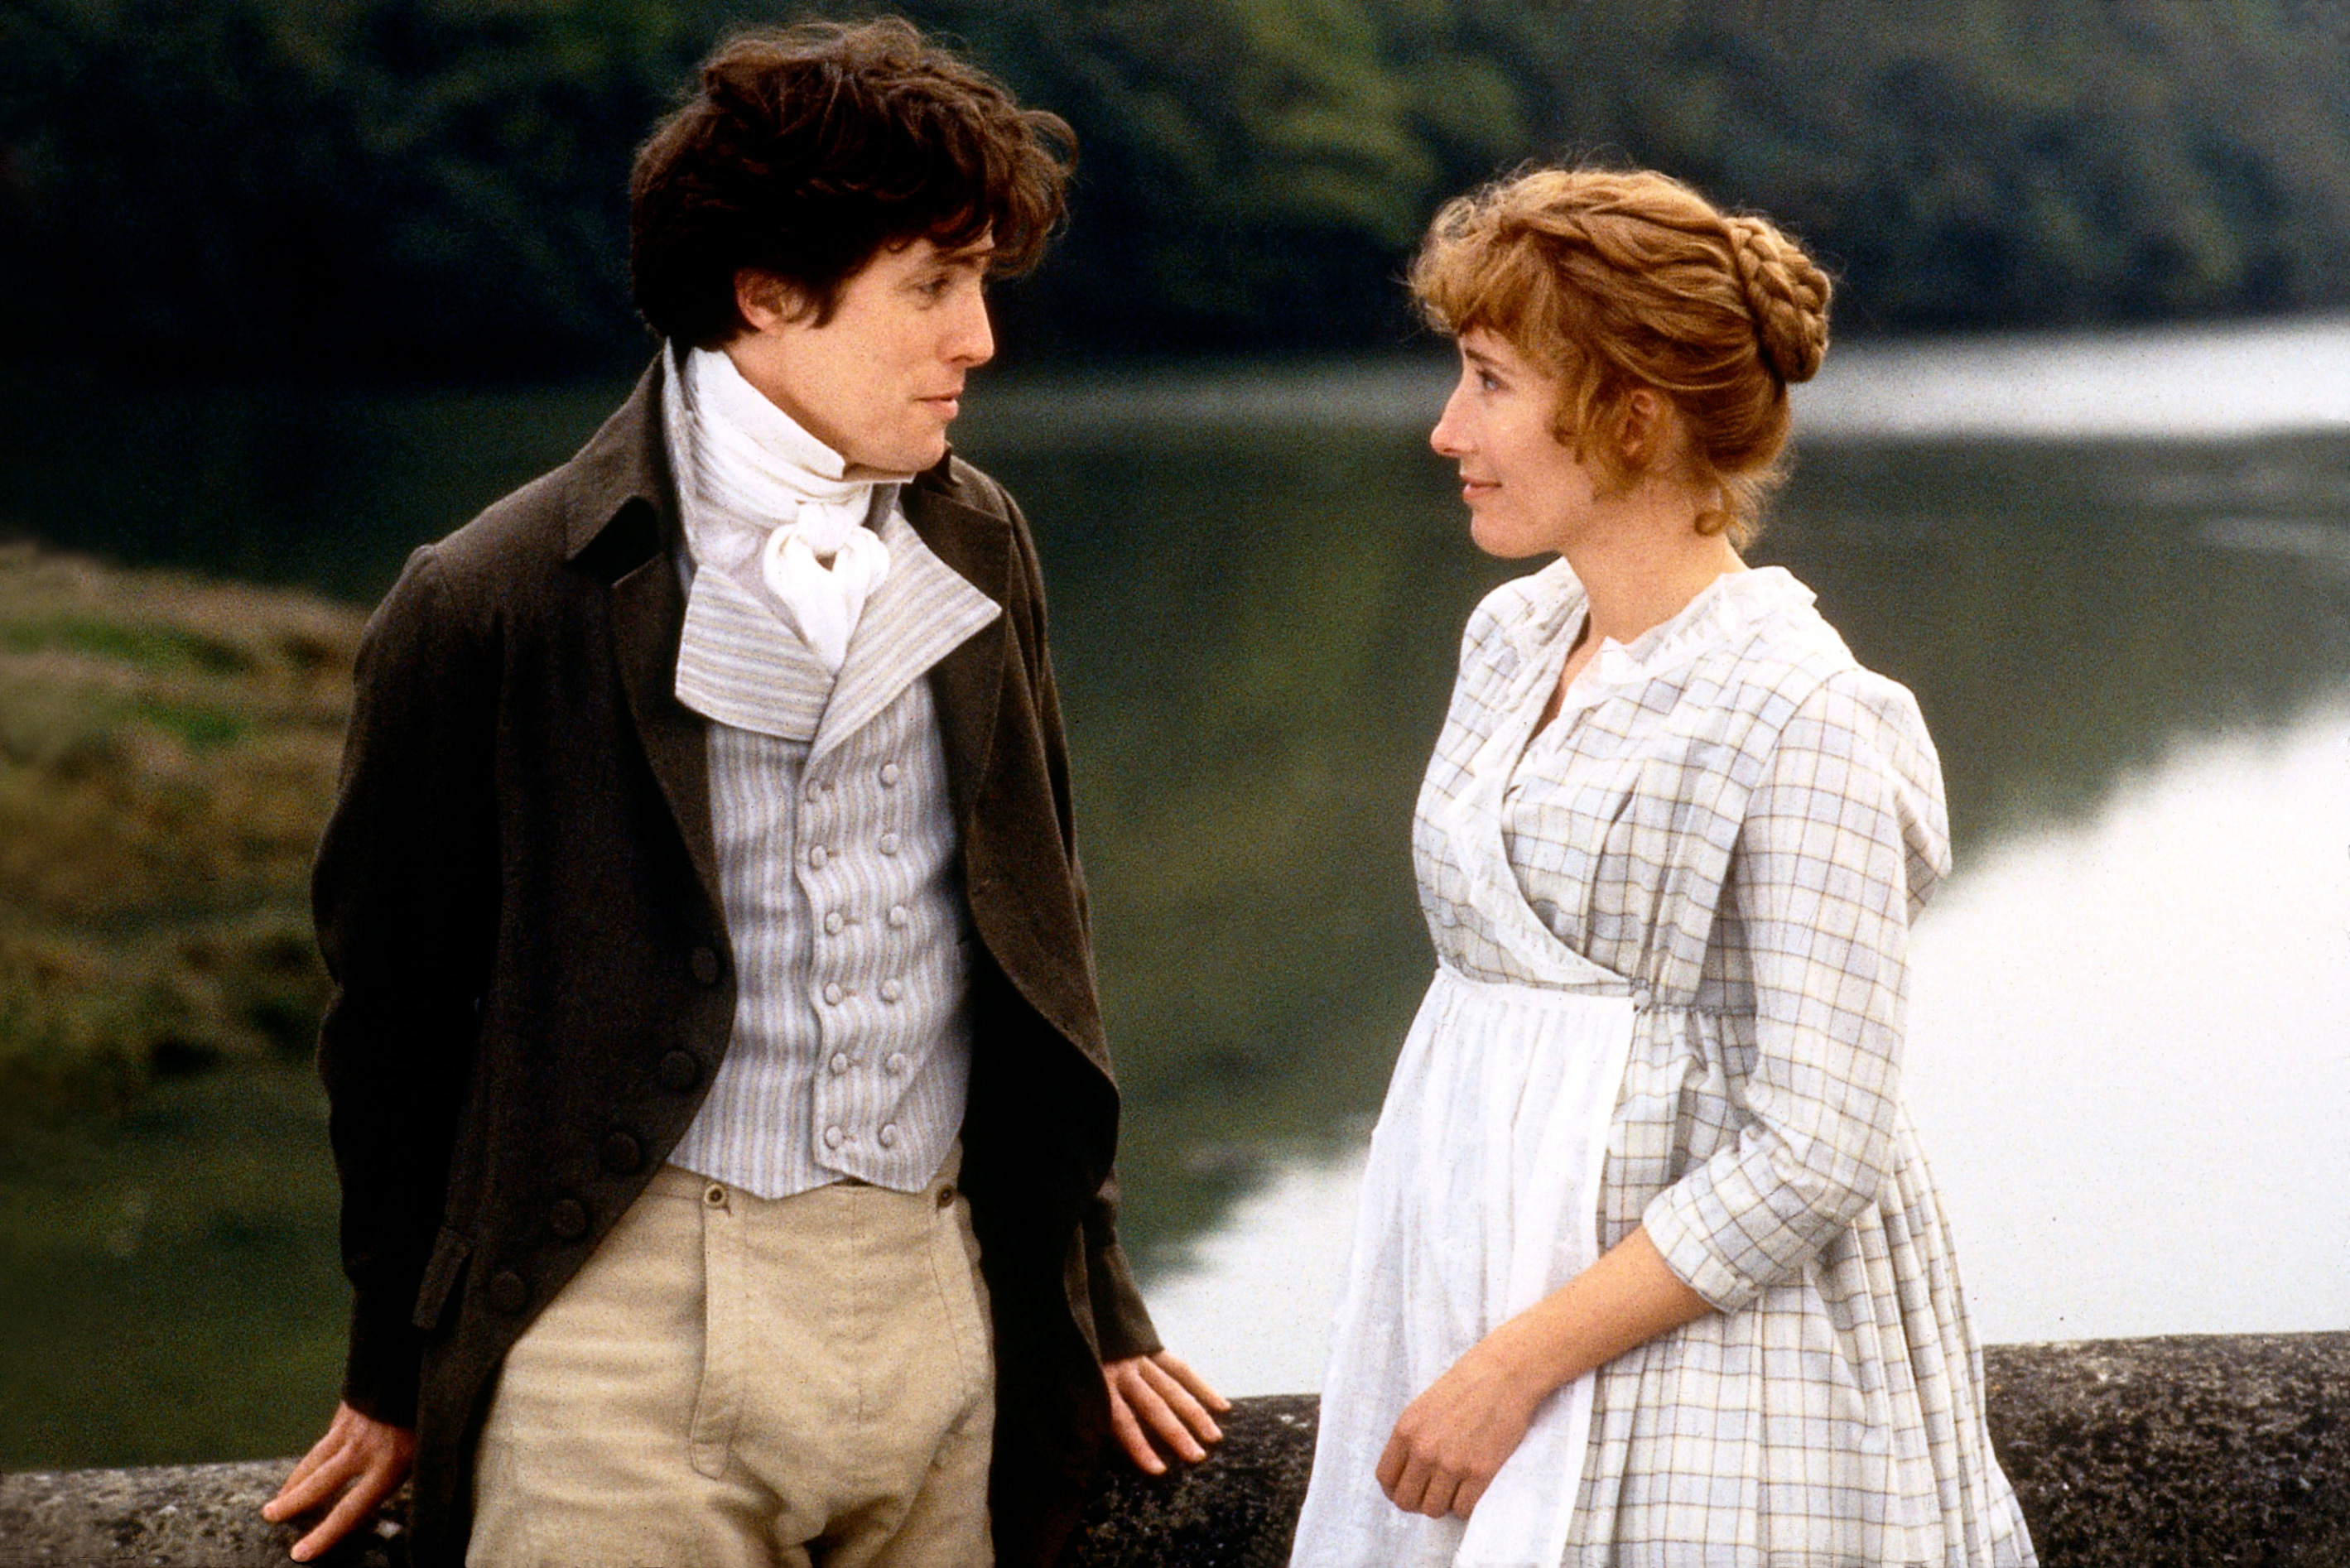 an analysis of the characters in sense and sensibility by ang lee Comparative analysis lucy honeychurch in a room with a view by em forster and marianne dashwood in sense and sensibility by jane austen marianne's growth and changes are contrasted with the lack of change or growth in lucy in this paper consisting of five pages.